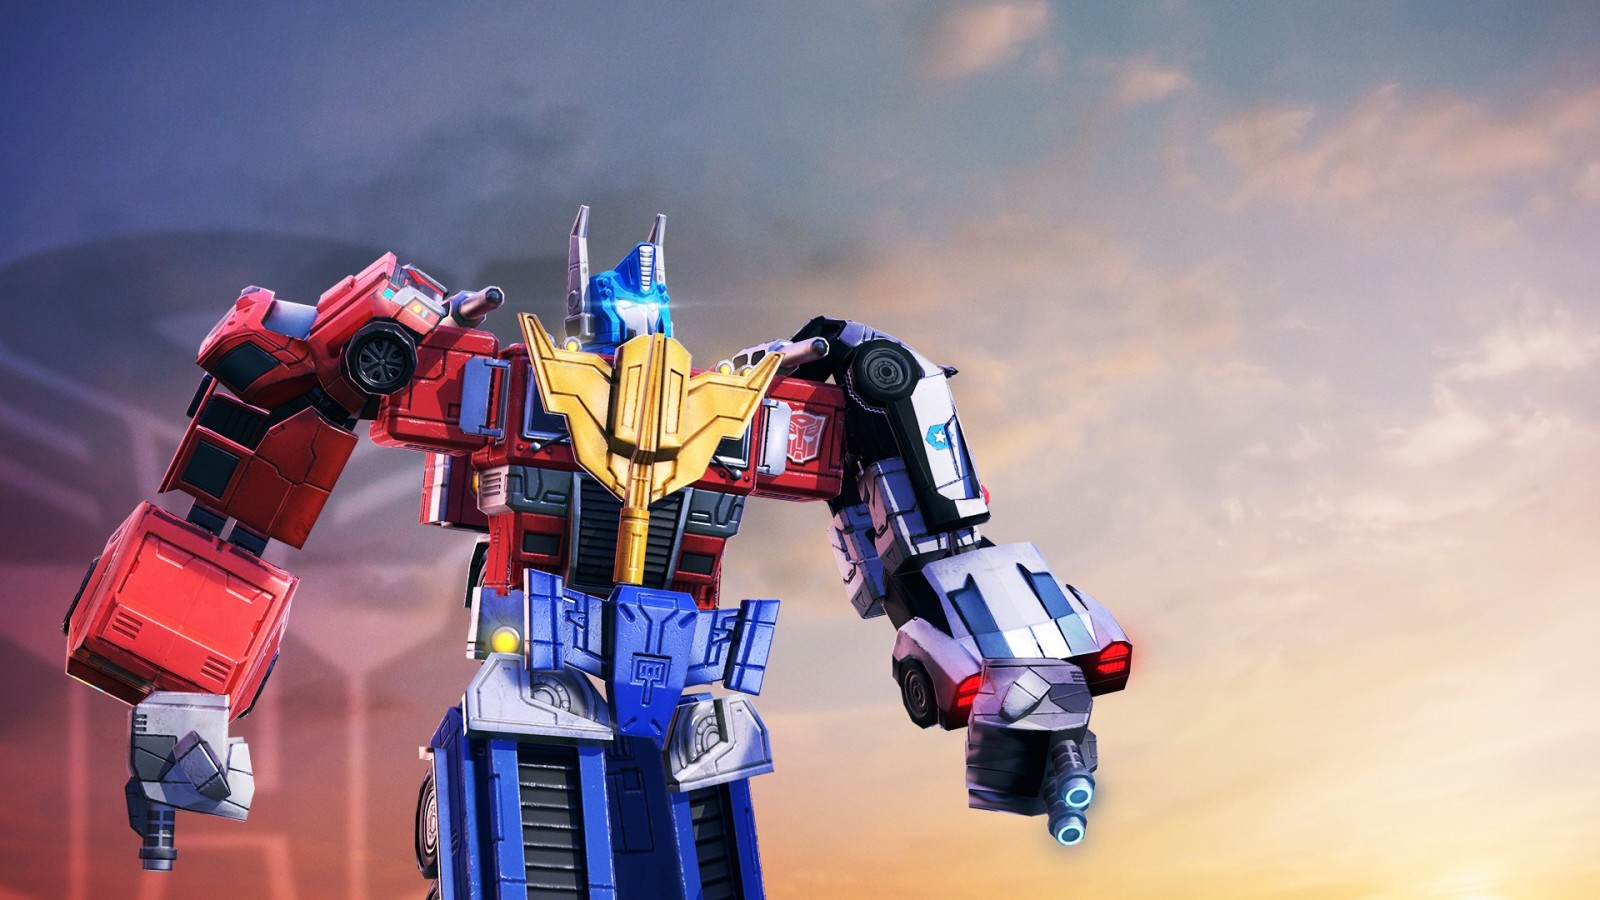 Transformers News: Transformers: Earth Wars Update - Countdown to Combination: Bruticus and Optimus Maximus Spotlight